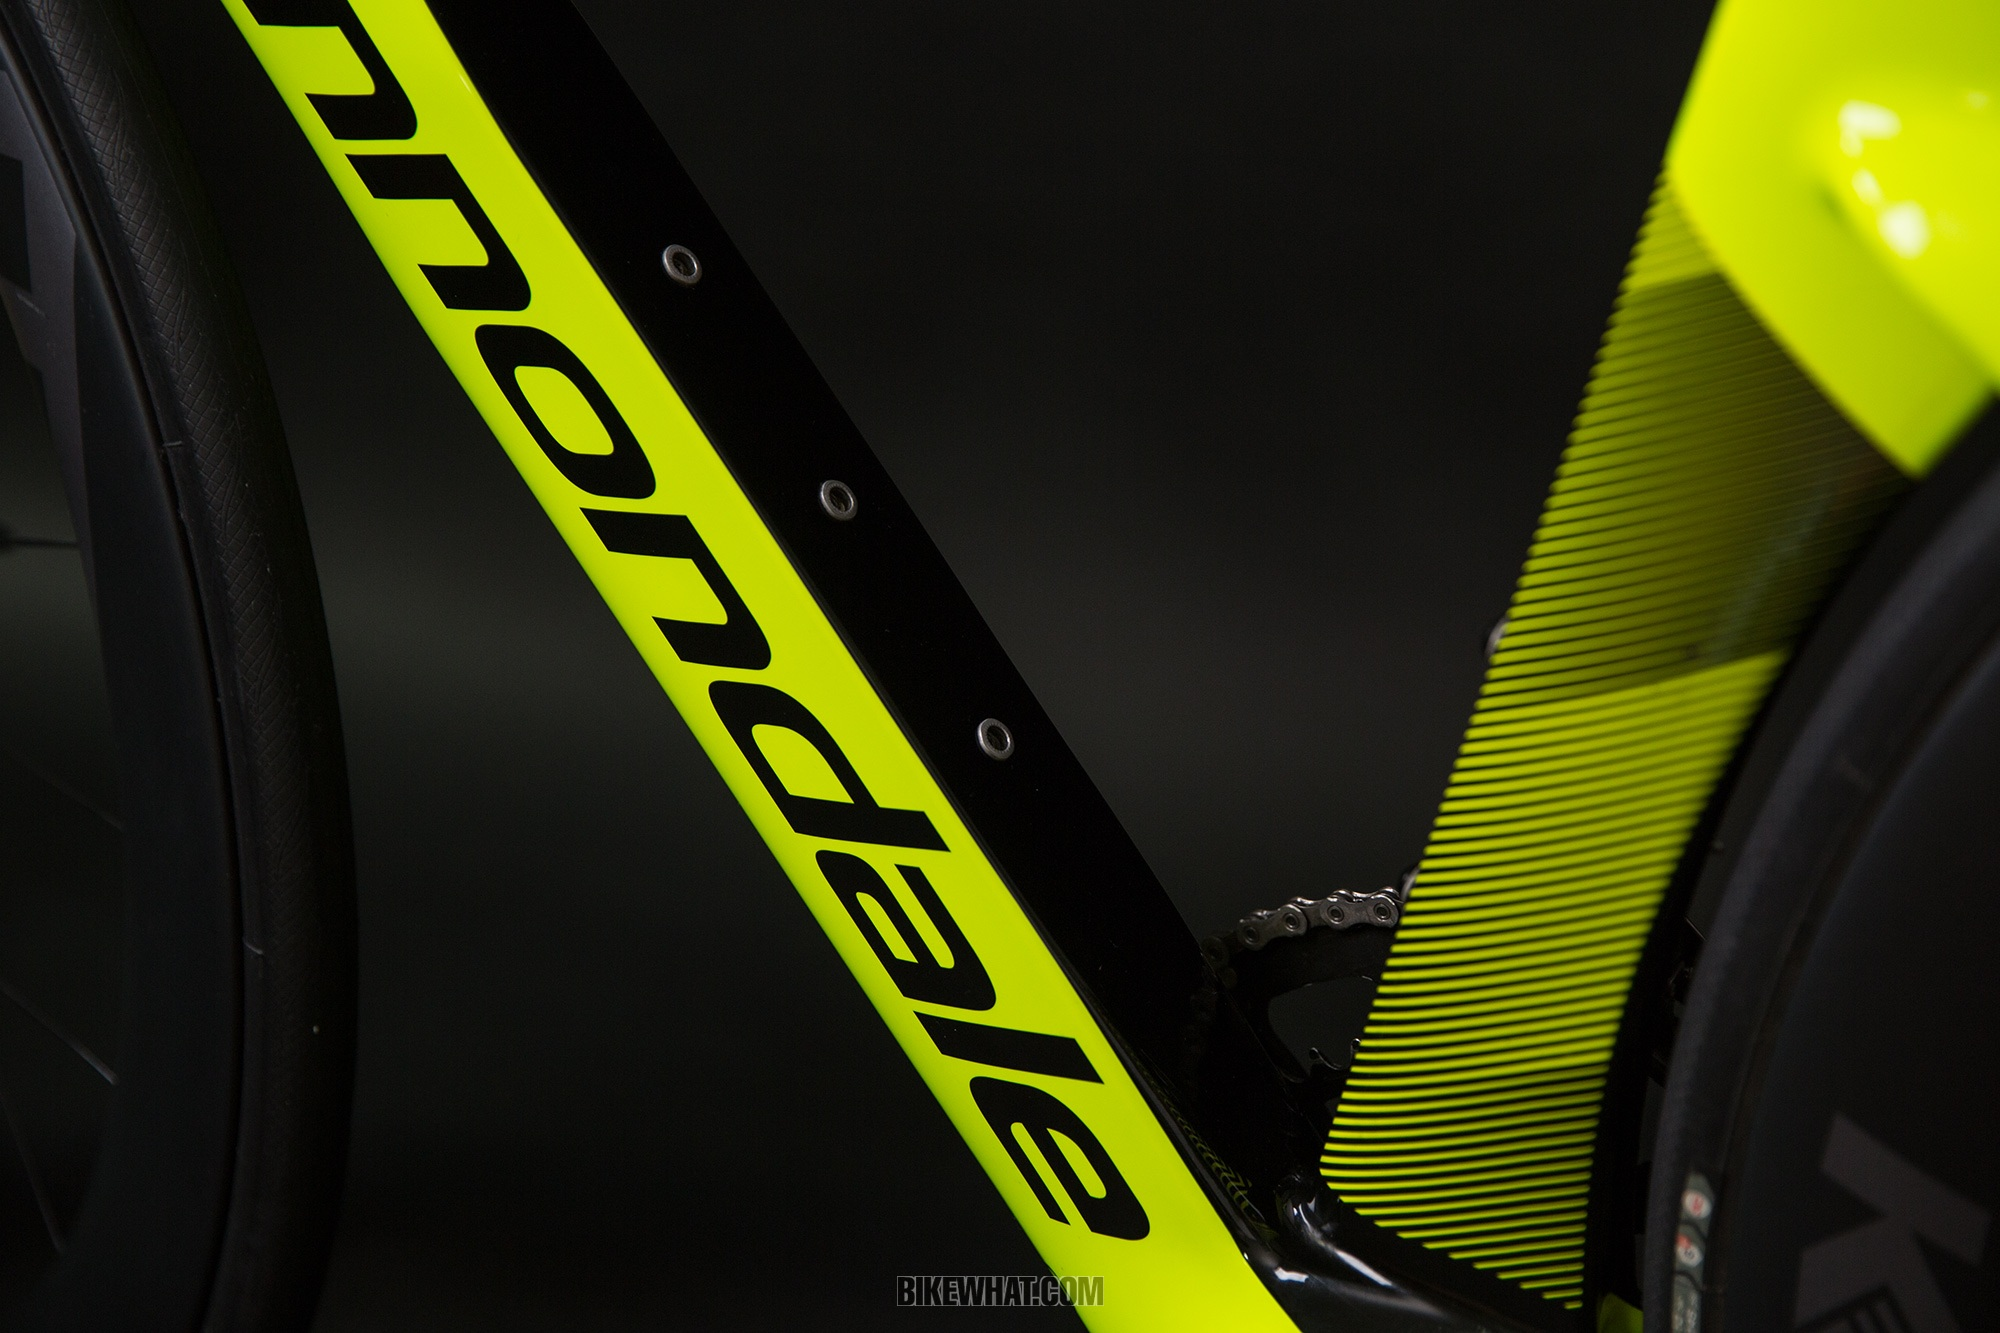 testride_cannondale_systemsix_06.jpg